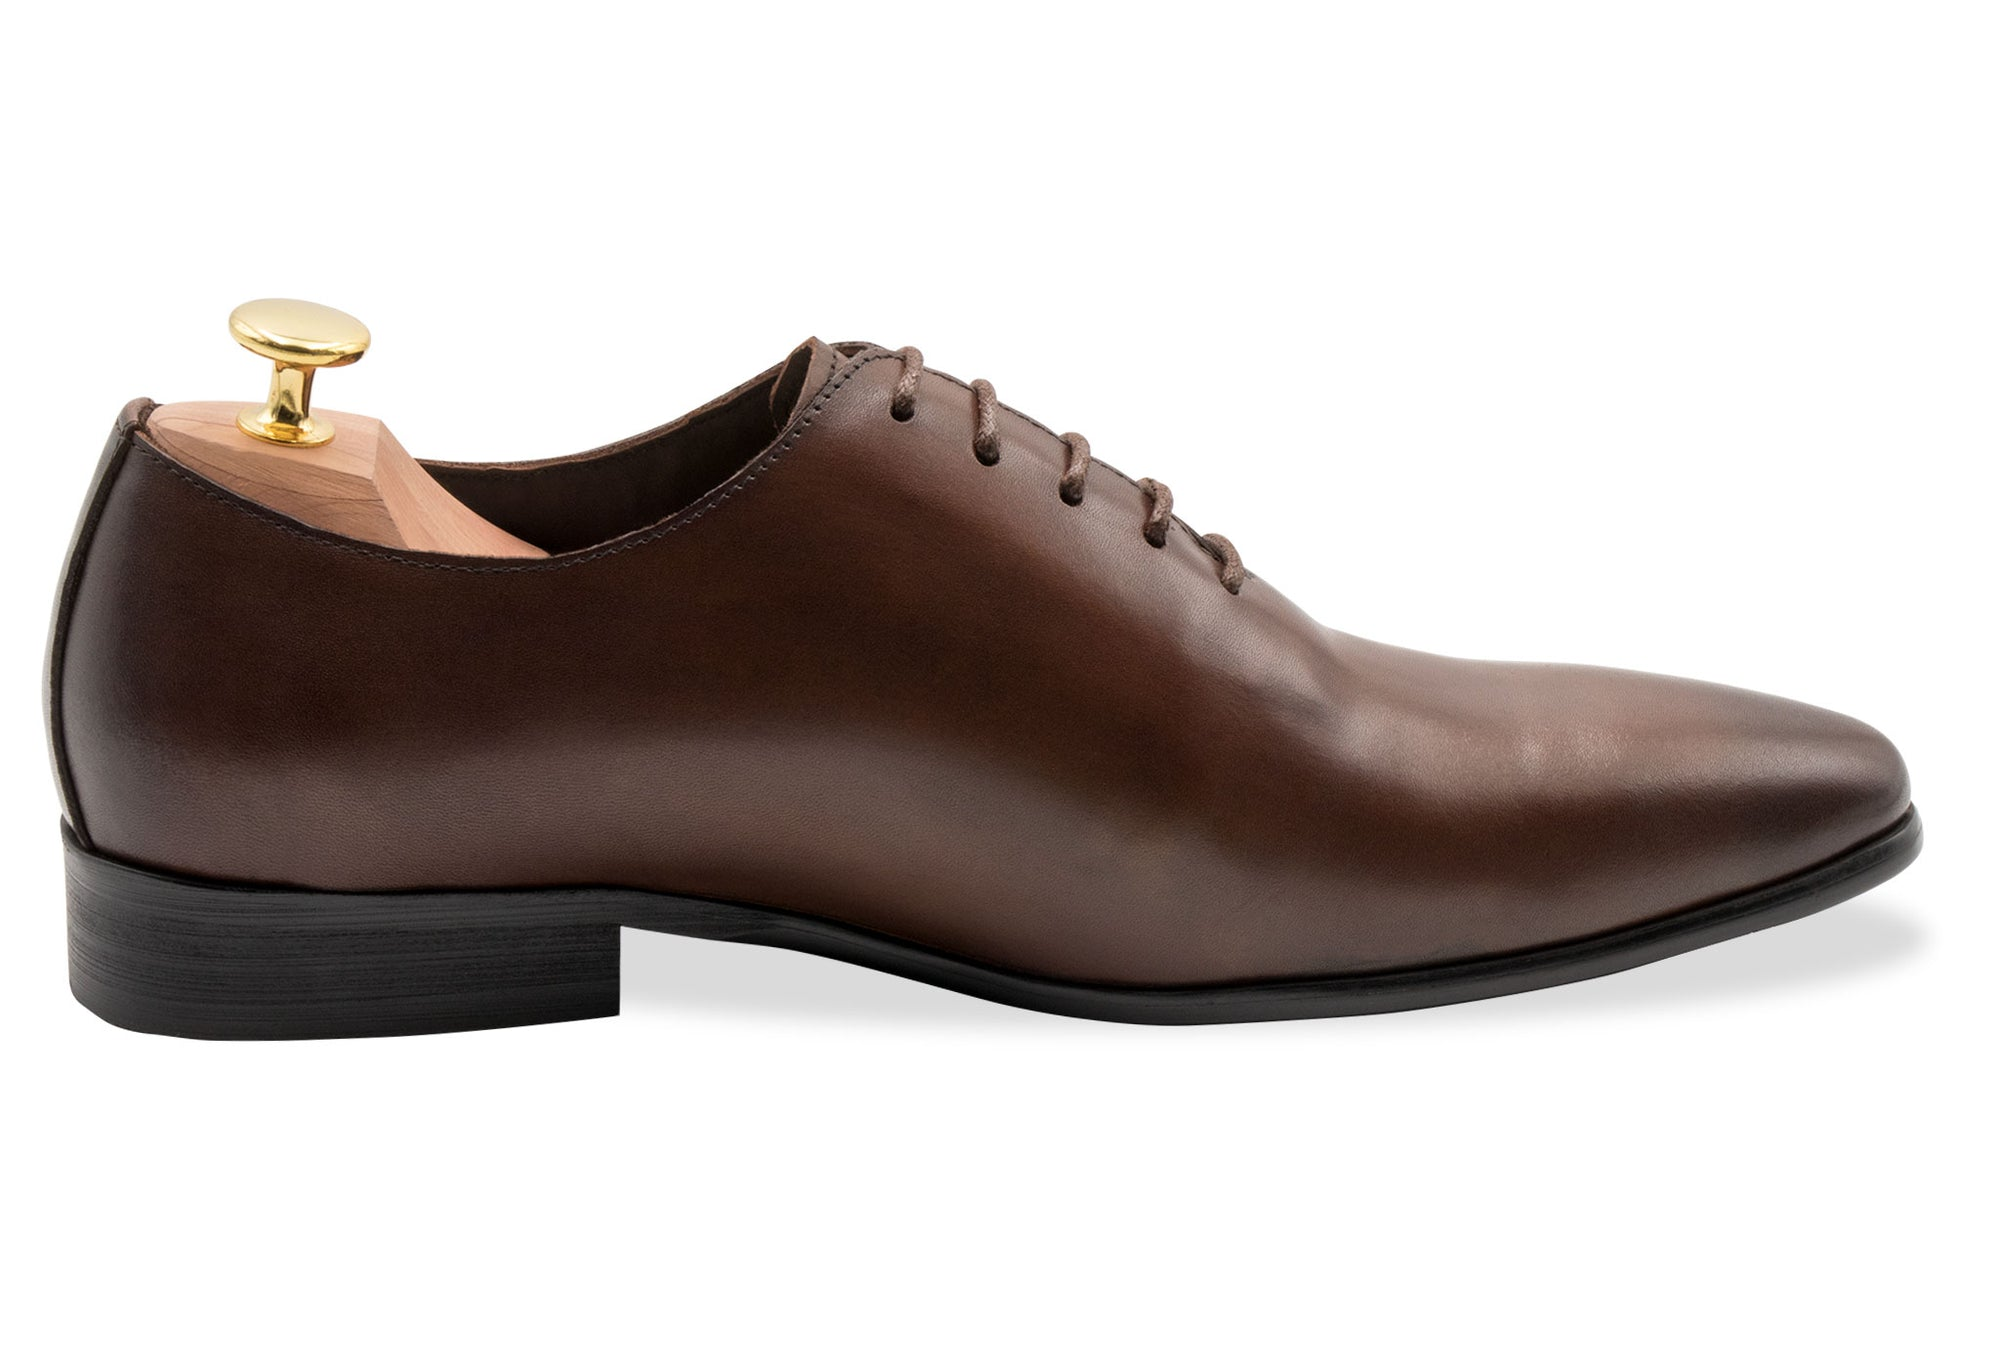 Carlota Blake Stitched Walnut Oxford